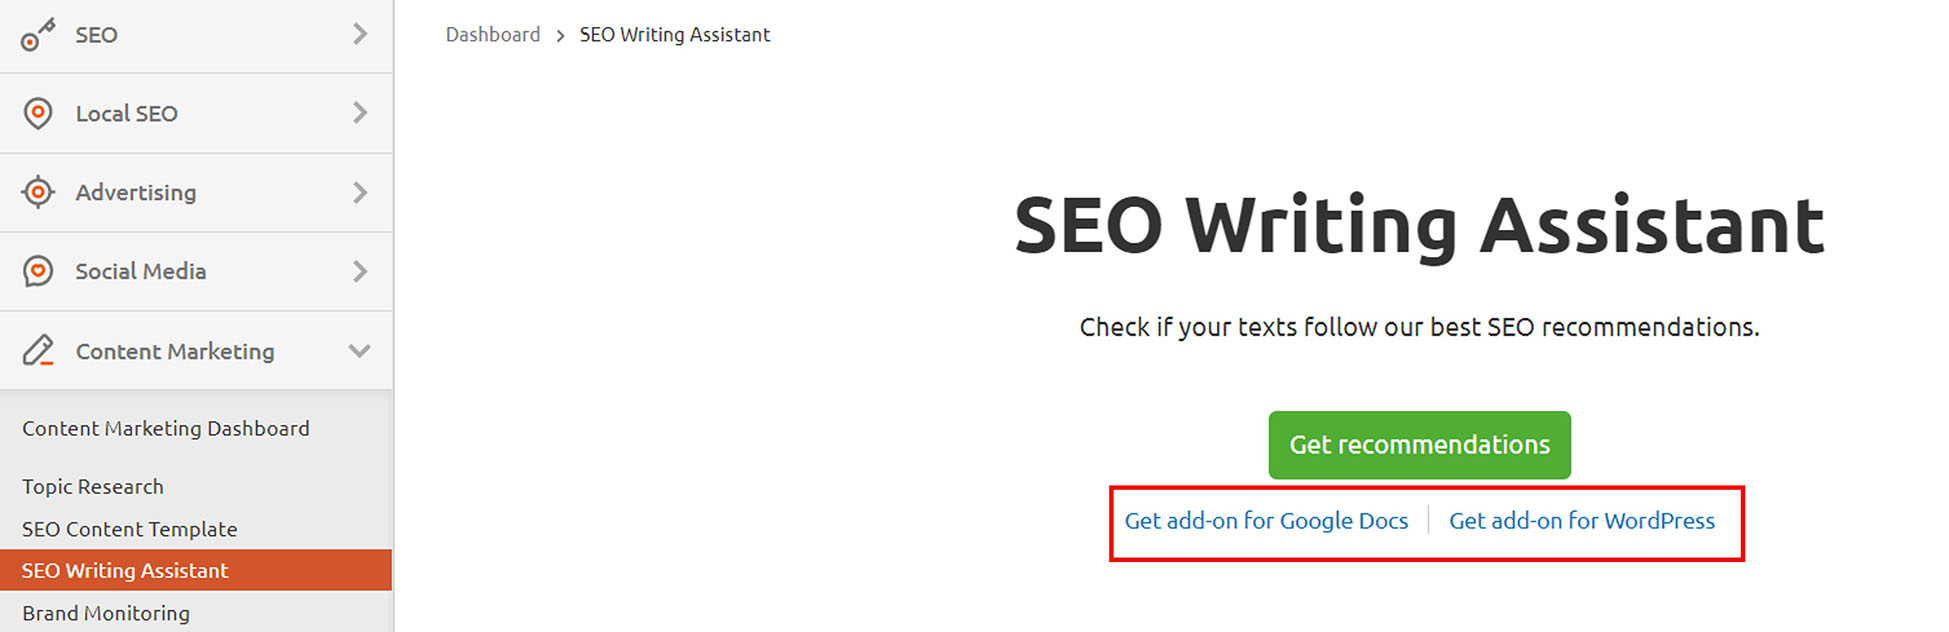 seo writing assistant add-ons